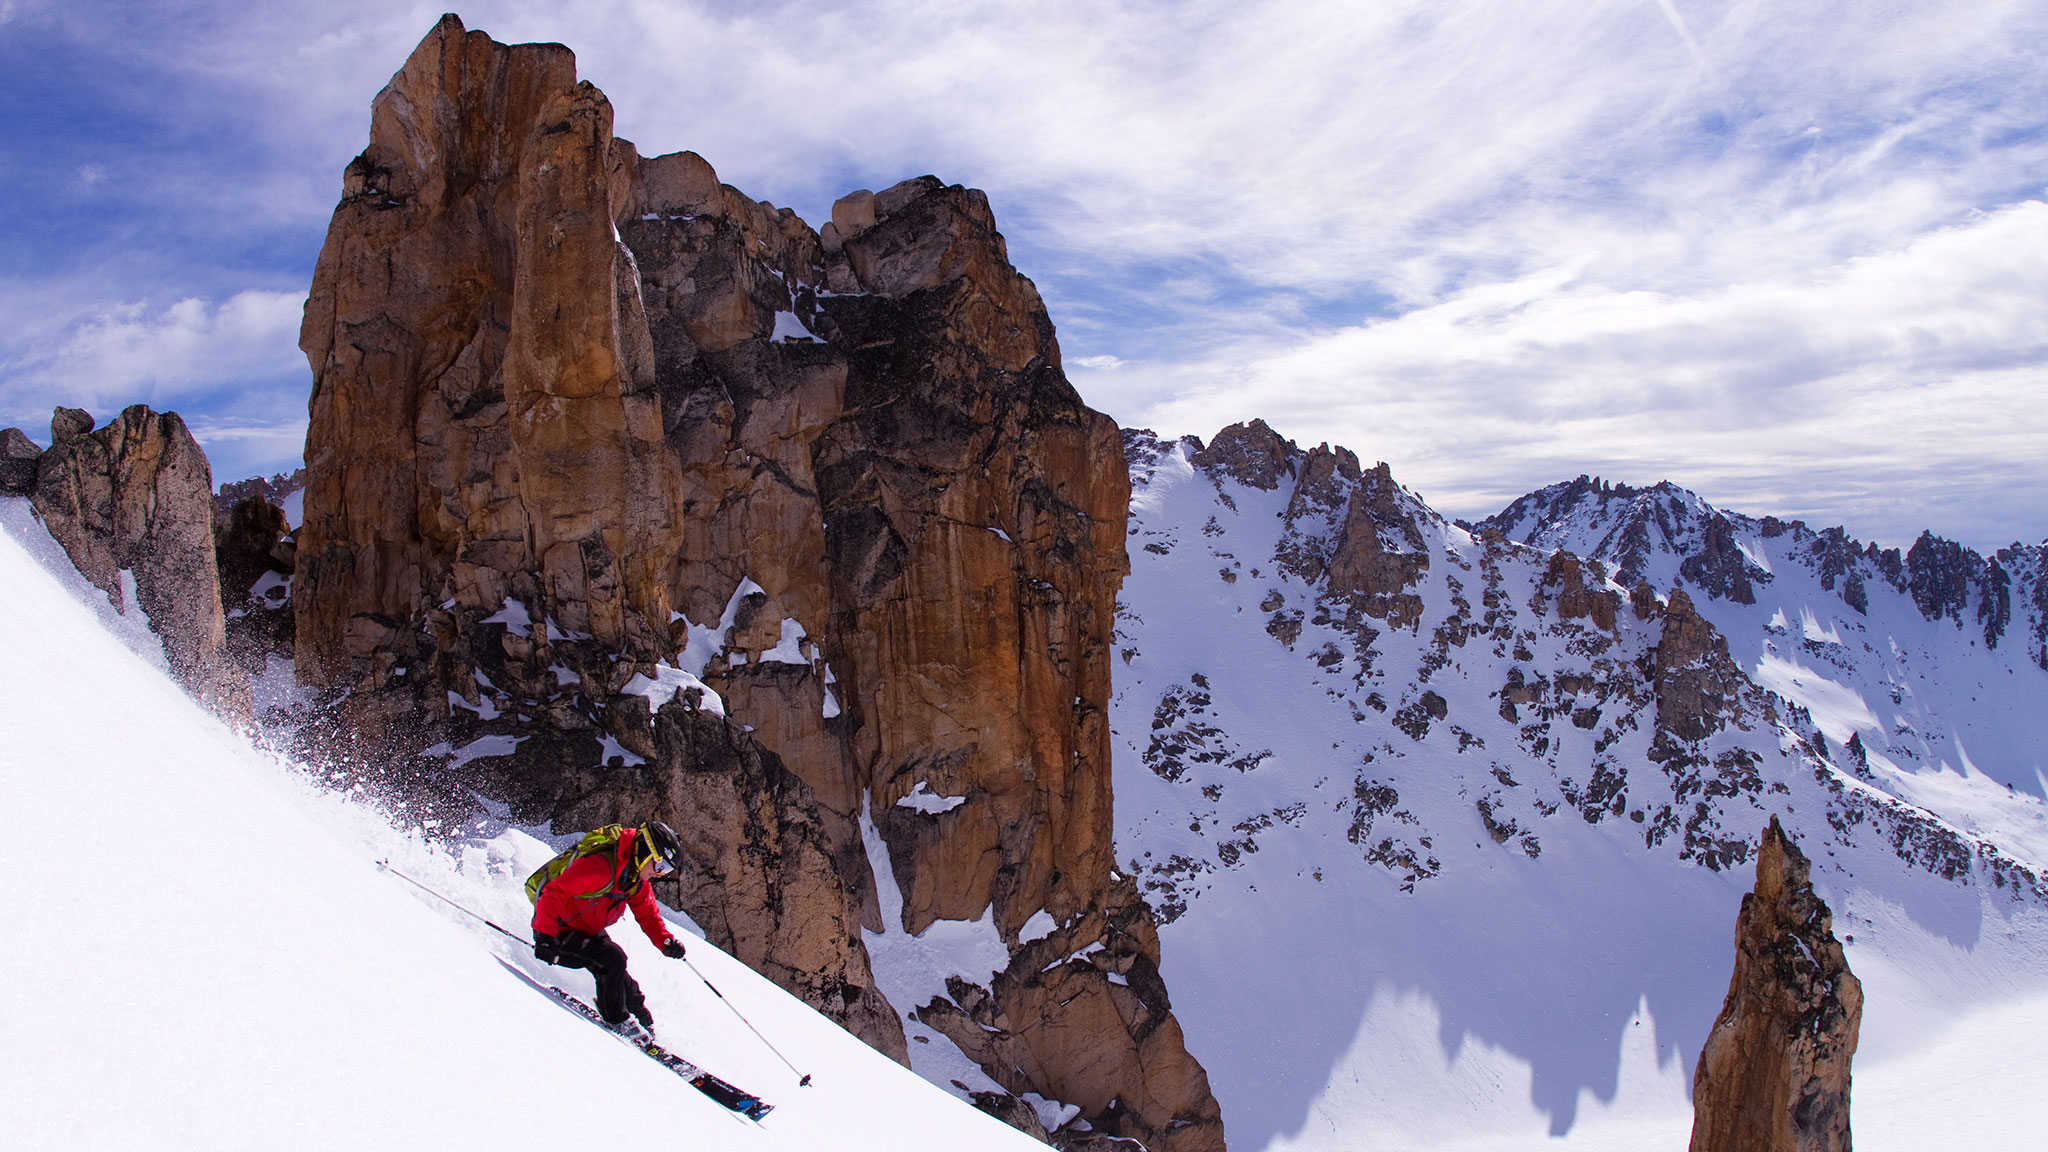 Giulia Monego was a competitive big-mountain skier before deciding to become a mountain guide.